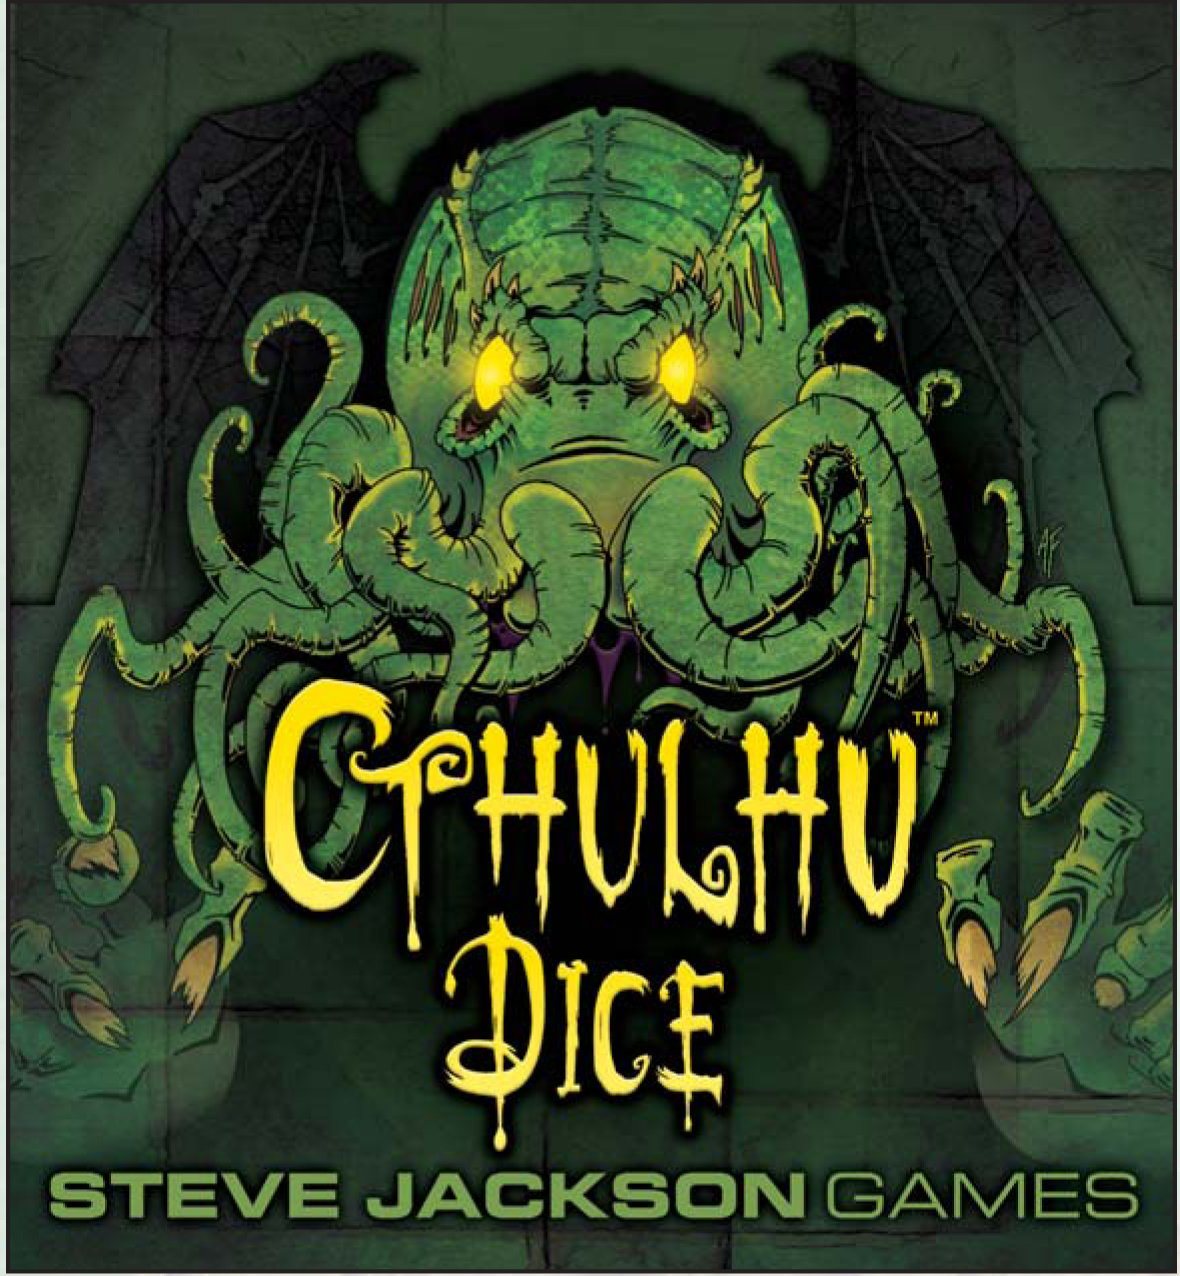 Cthulhu Dice  The Insane Dice Game